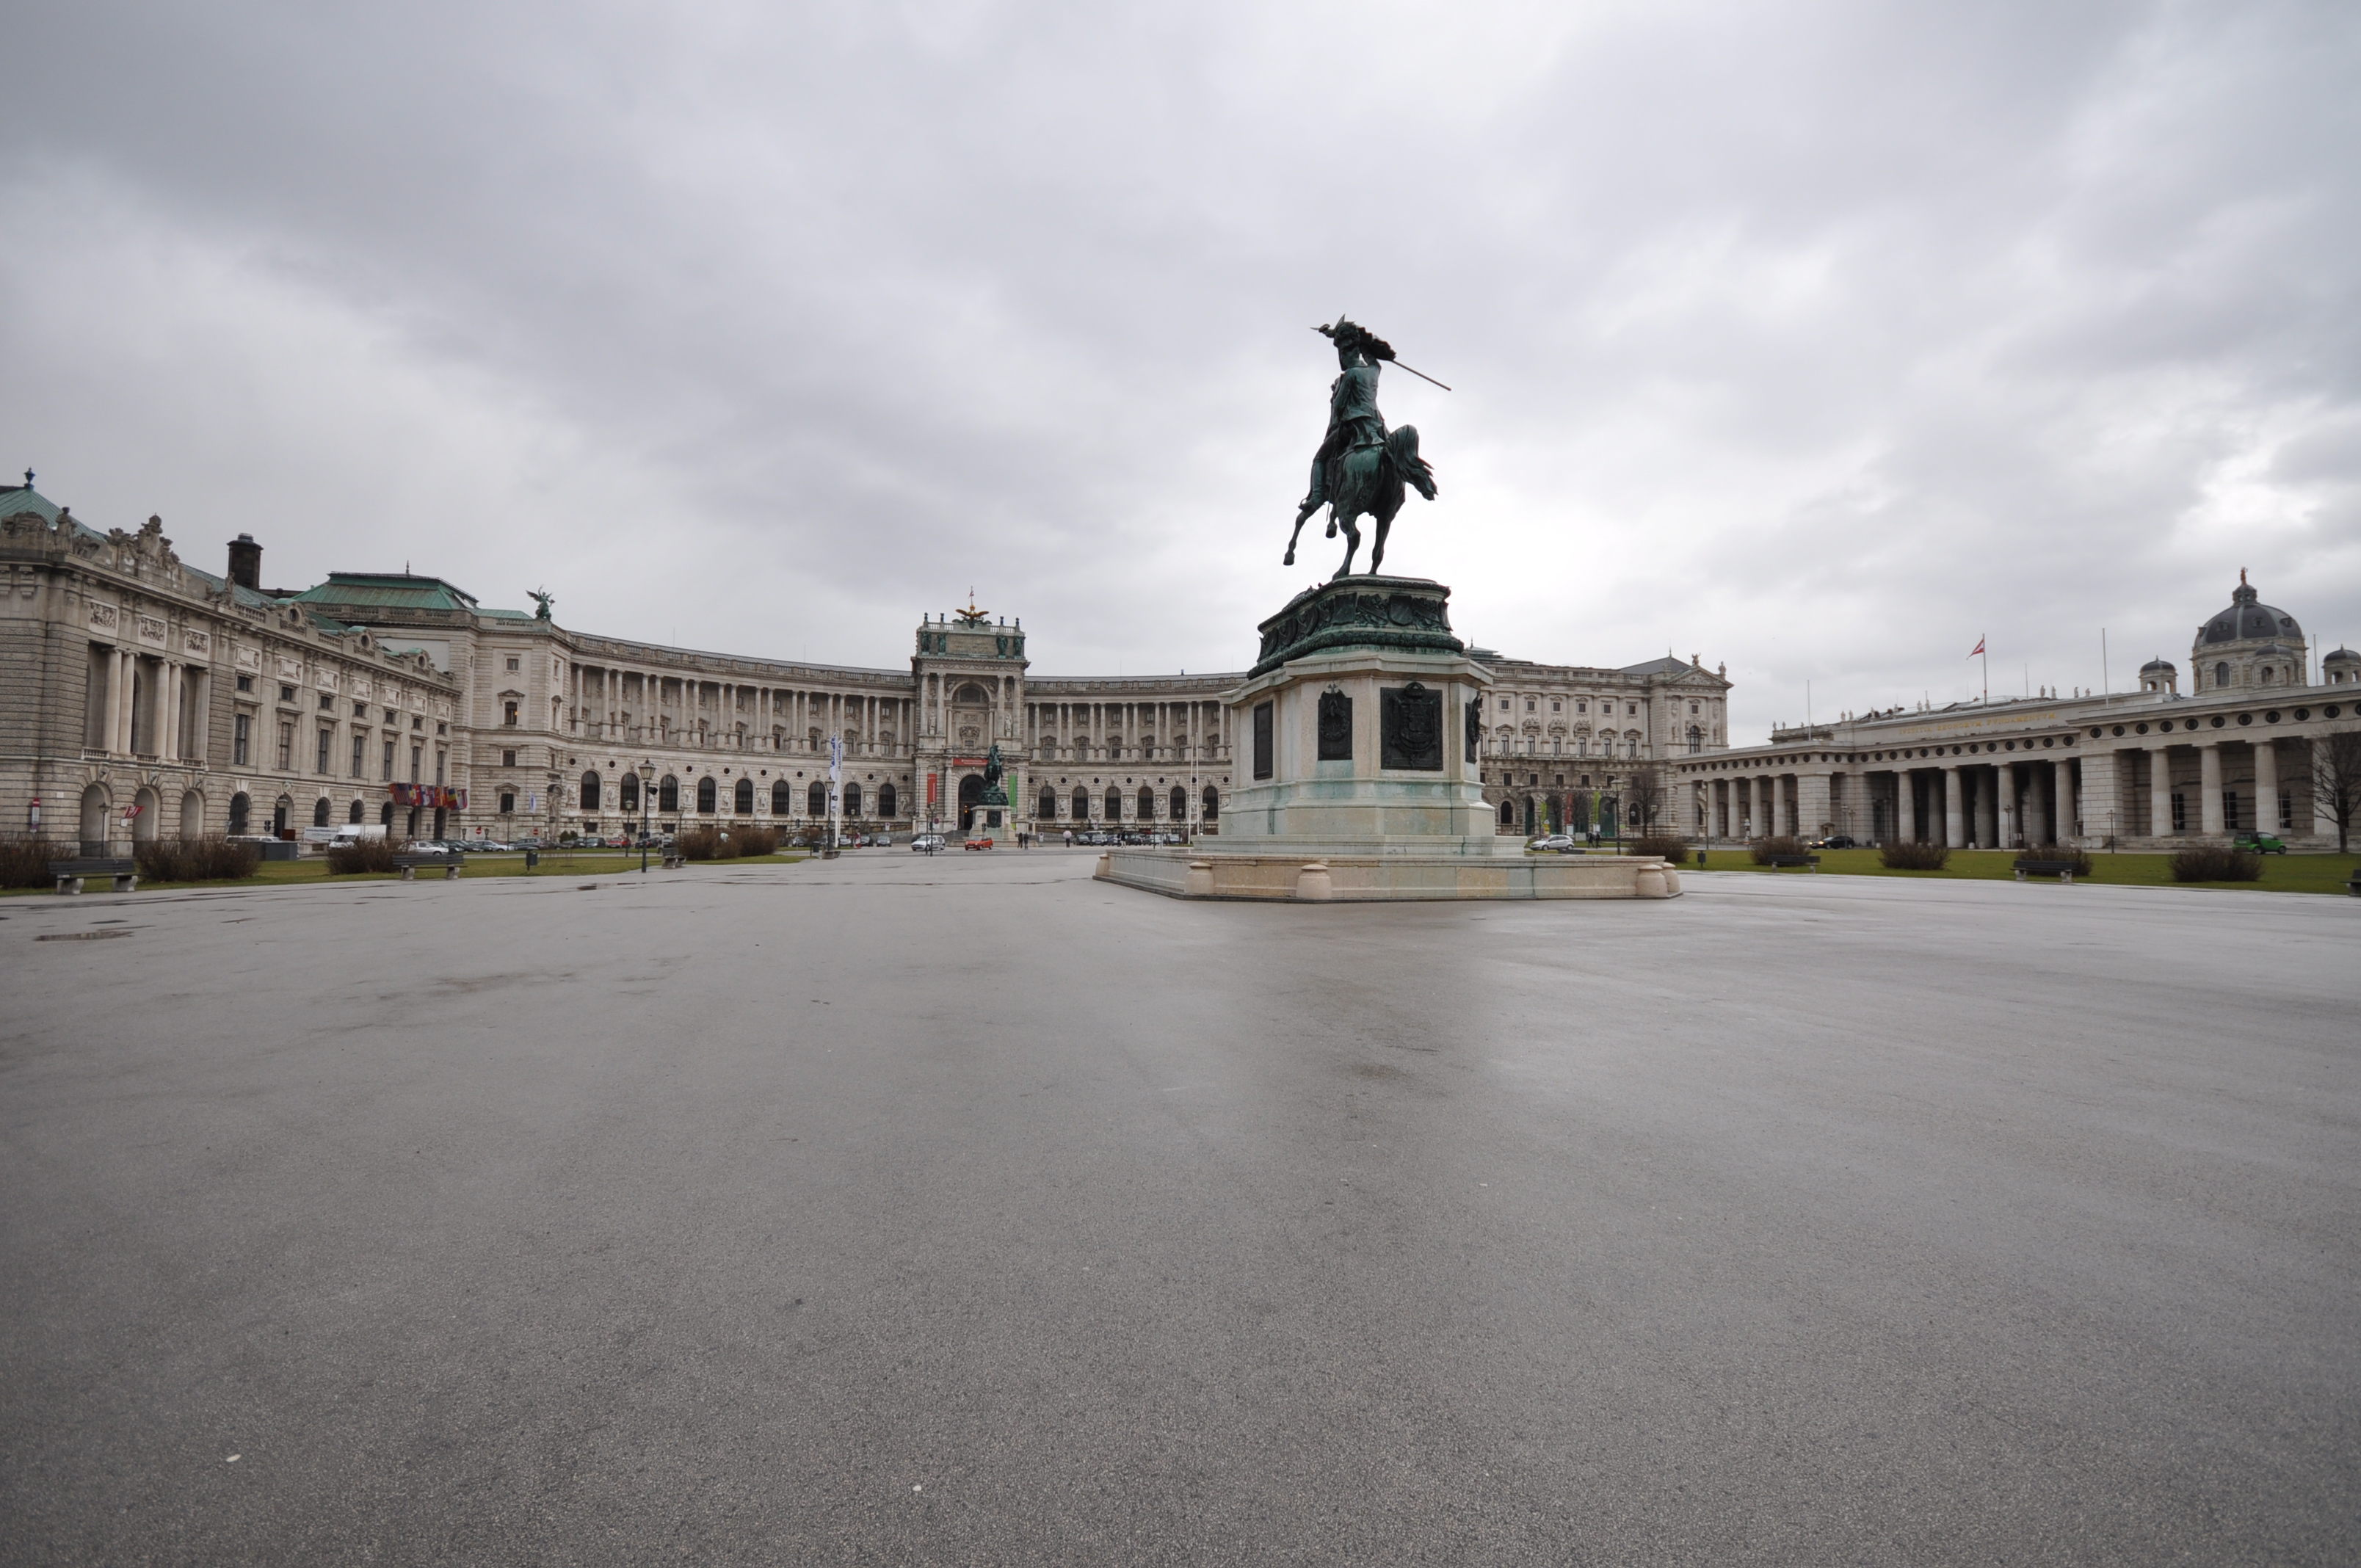 Heldenplatz Picture: File:Statue Of Archduke Charles Of Austria On The